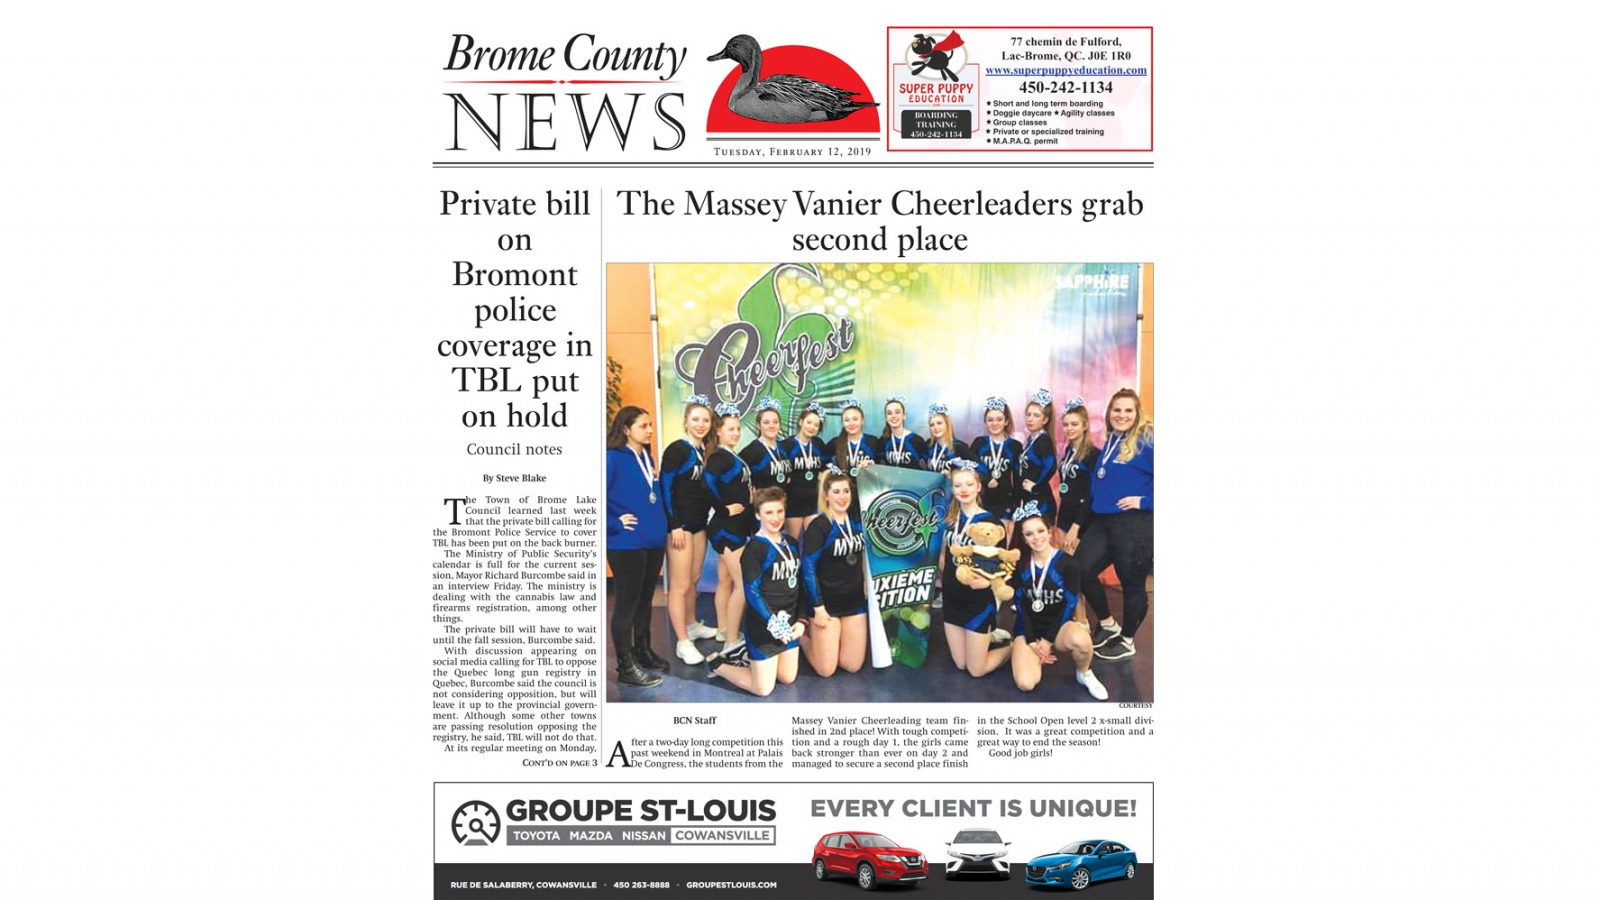 Brome County News – February 12, 2019 edition